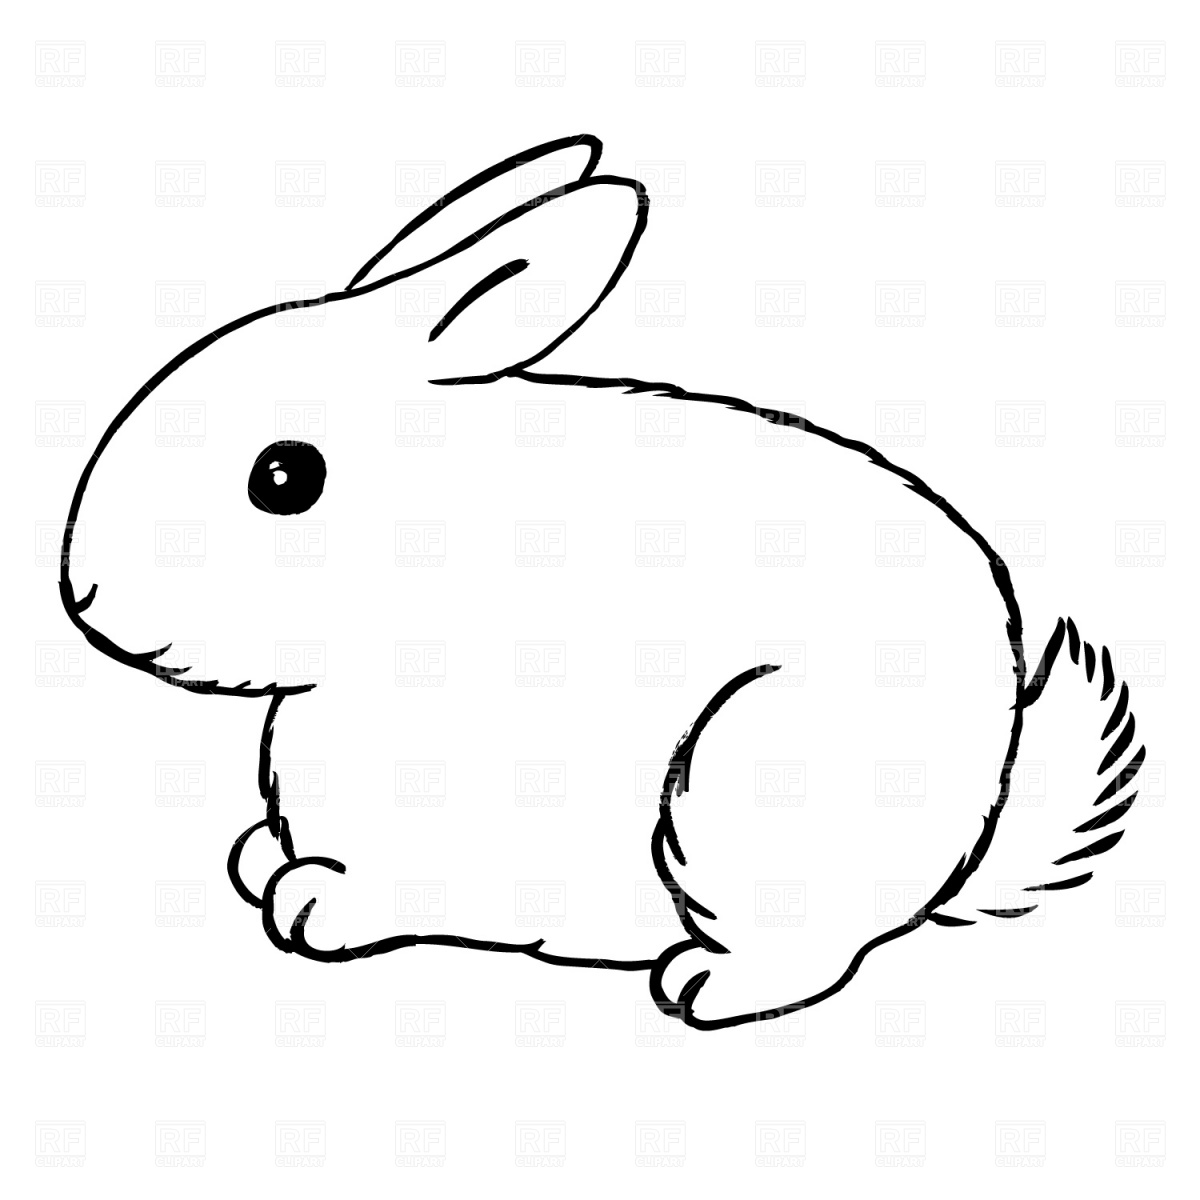 Bunny Clipart Black And White Clipart Panda